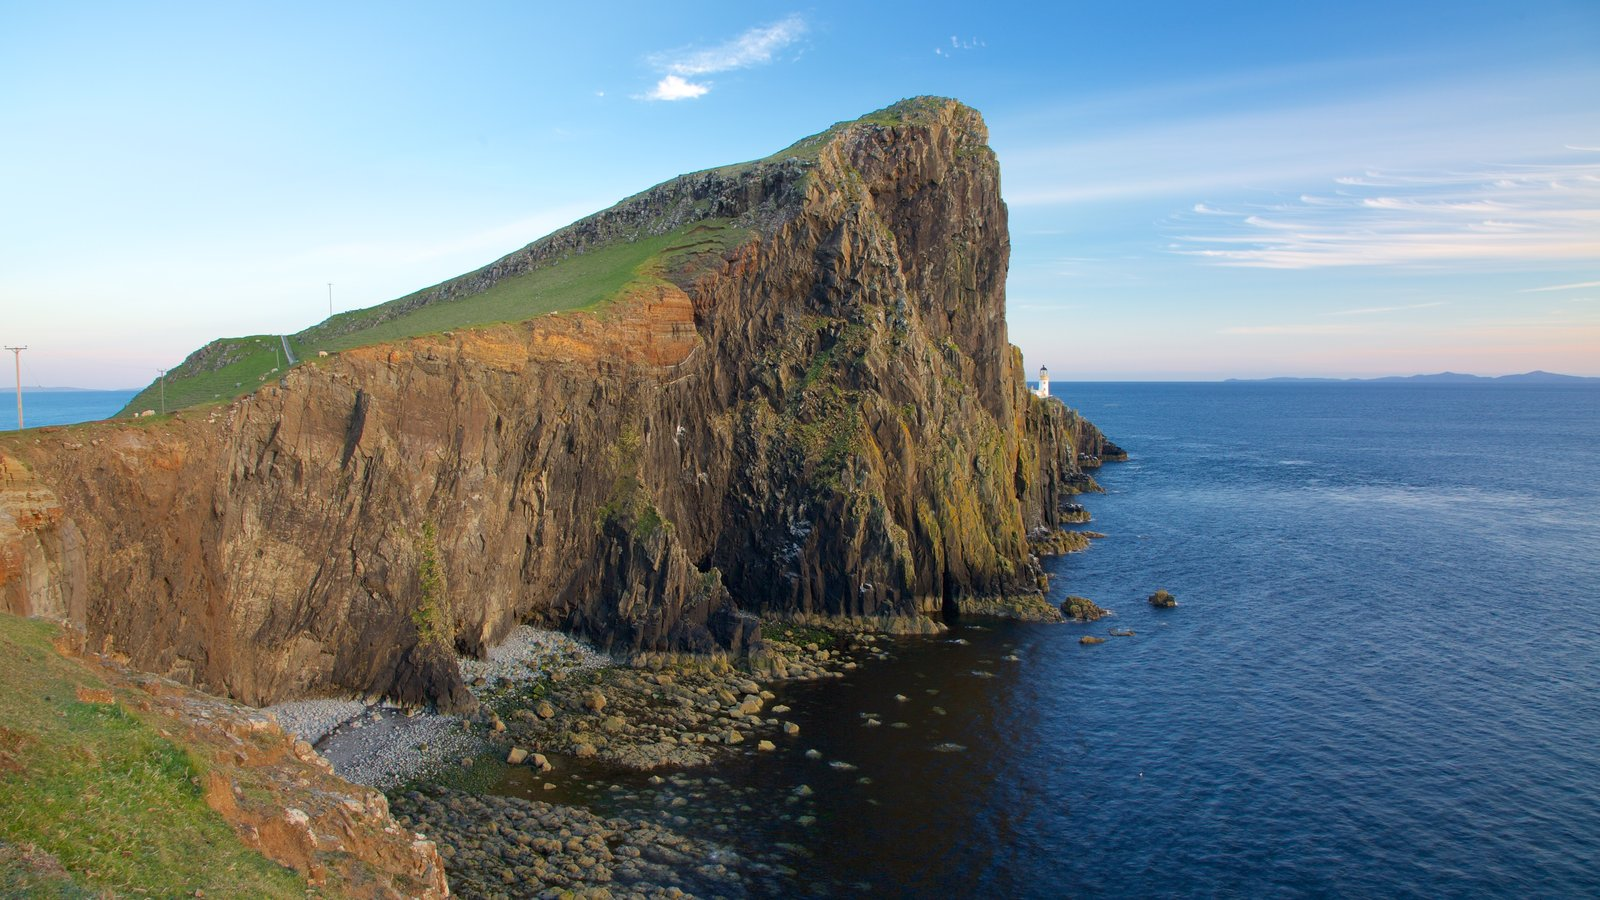 Isle of Skye showing rugged coastline, a lighthouse and mountains